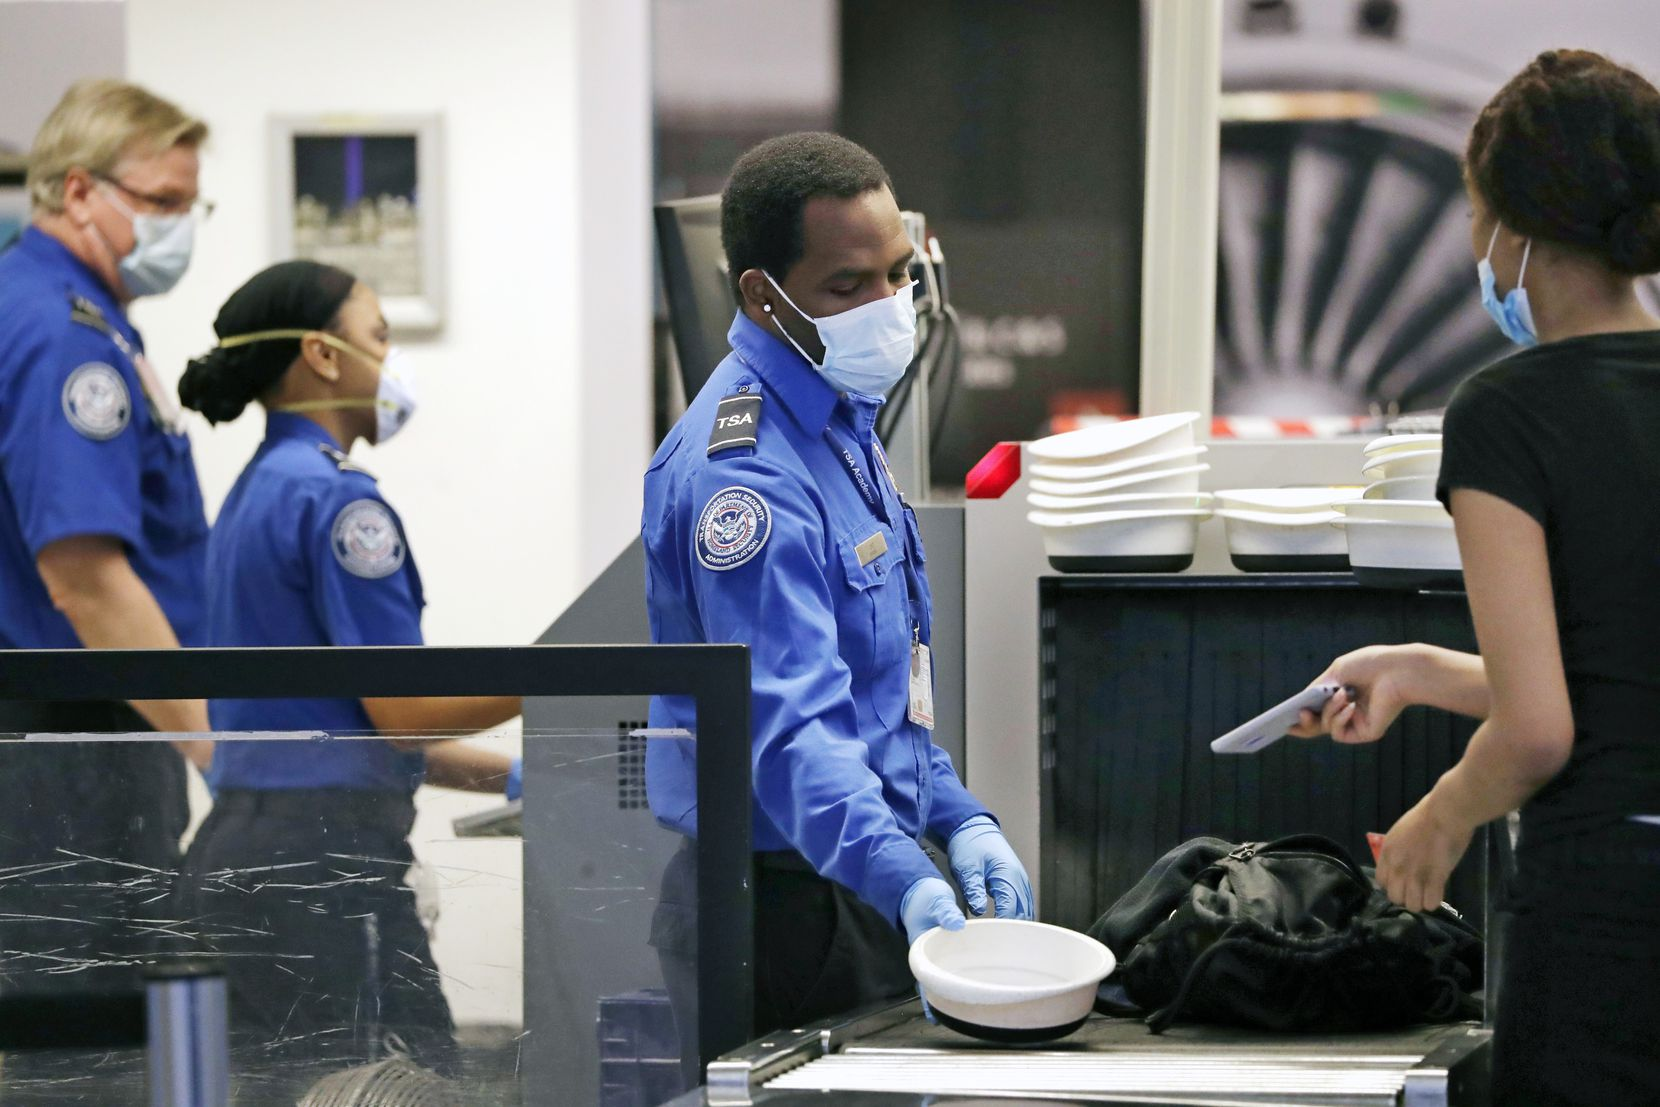 TSA officers wear protective masks at a security screening area at Seattle-Tacoma International Airport Monday, May 18, 2020, in SeaTac, Wash. Monday was the first day that travelers at the airport were required to wear face coverings in the public areas there. The Port of Seattle has encouraged its employees to wear face coverings, and all federal agencies that operate at the airport require their employees to wear face coverings. All airlines operating at SeaTac require employees and passengers to wear face coverings. (AP Photo/Elaine Thompson)